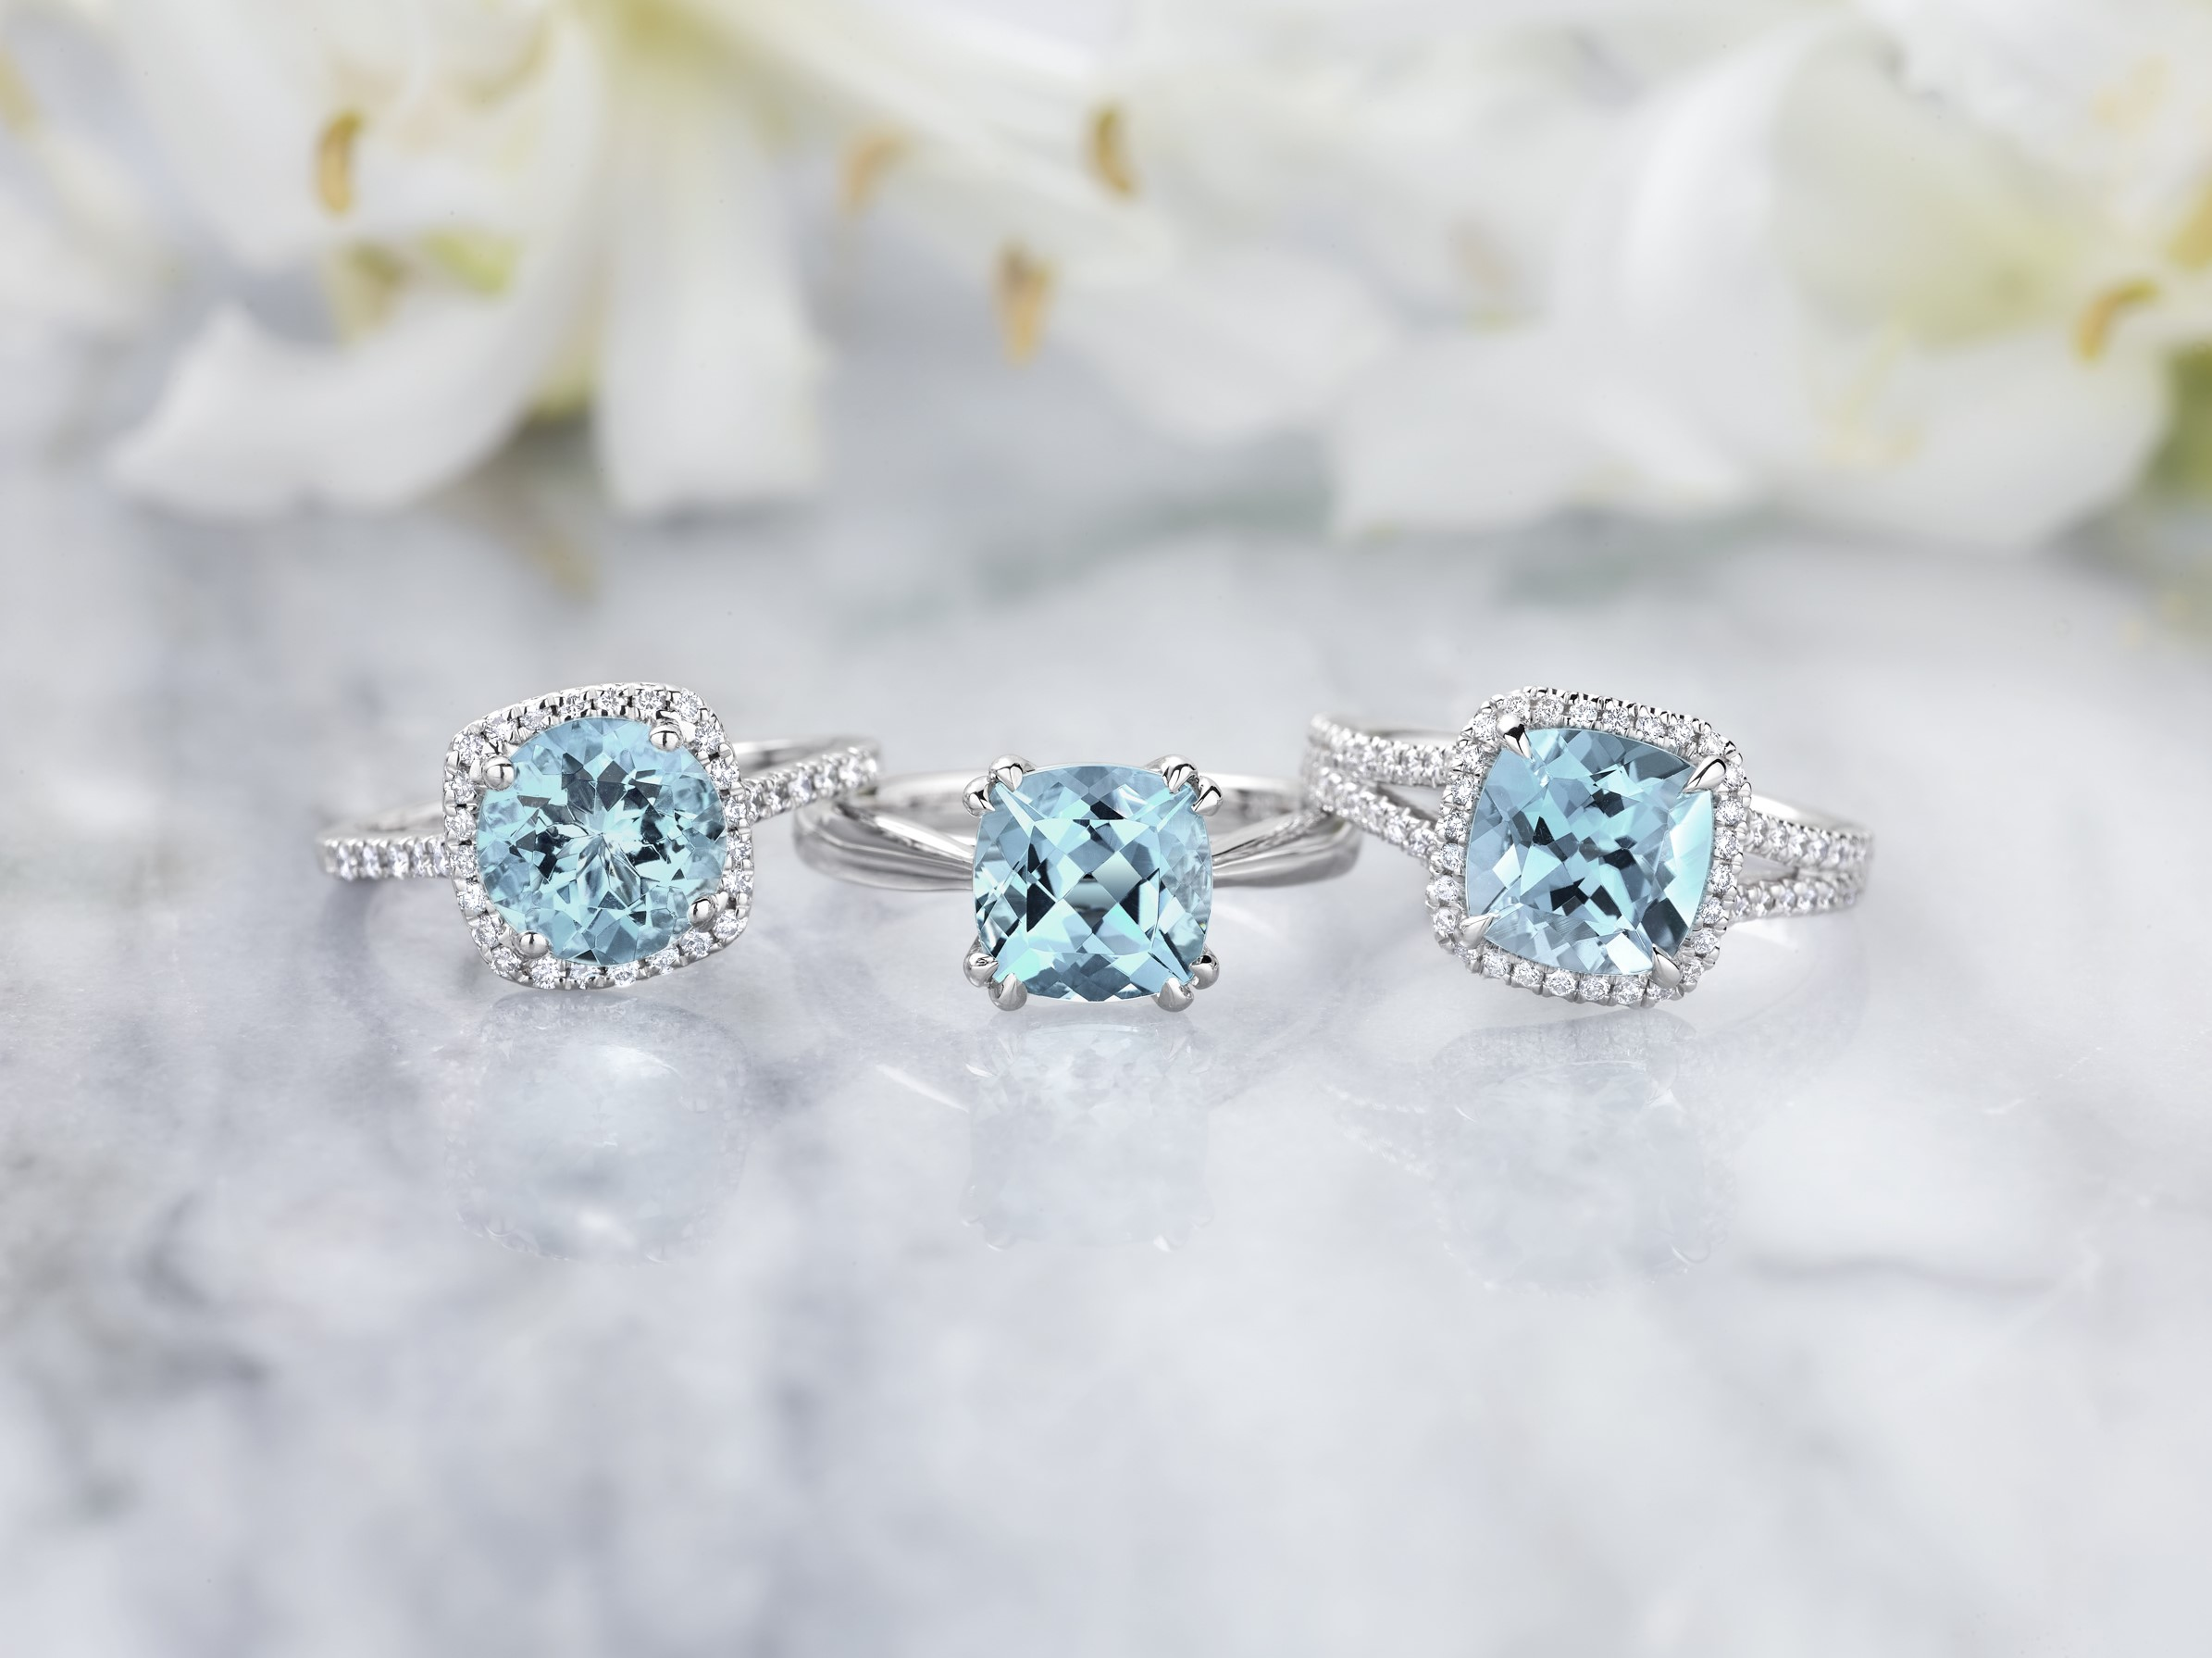 aqua topic non engagement diamond fullsizerender marine wedding share your rings